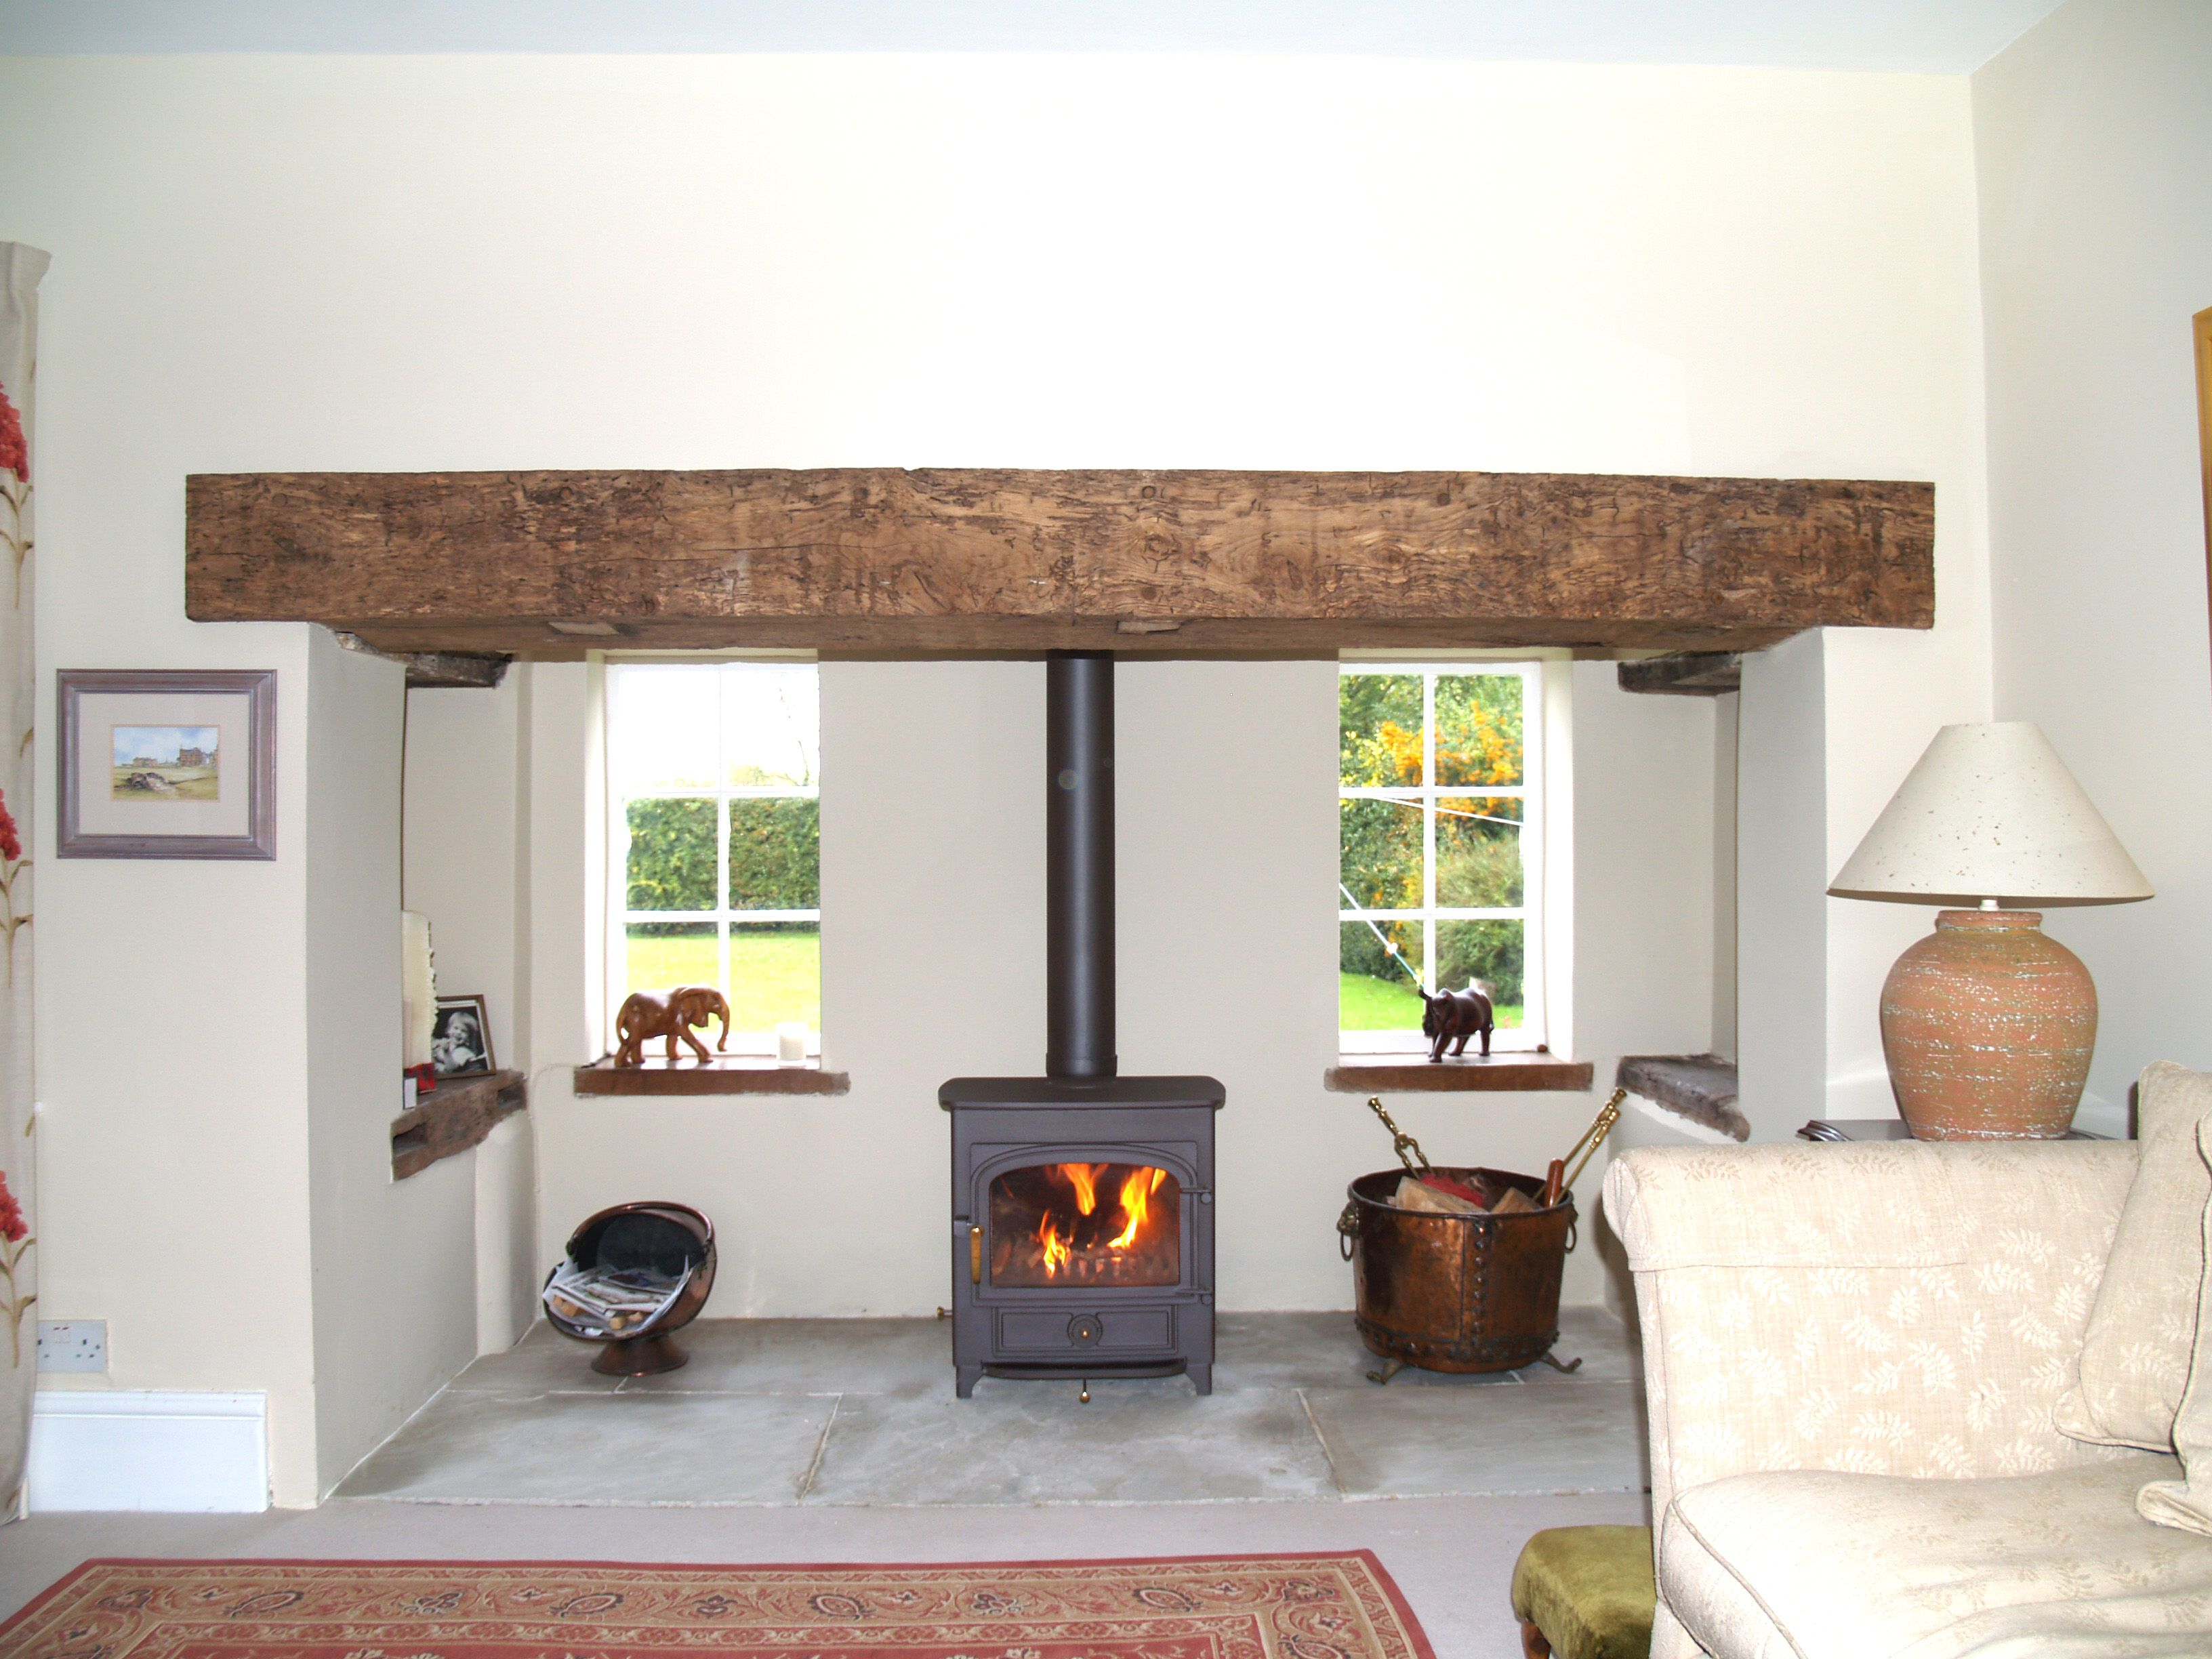 renovated essex inglenook with clad reclaimed oak beam sand stone